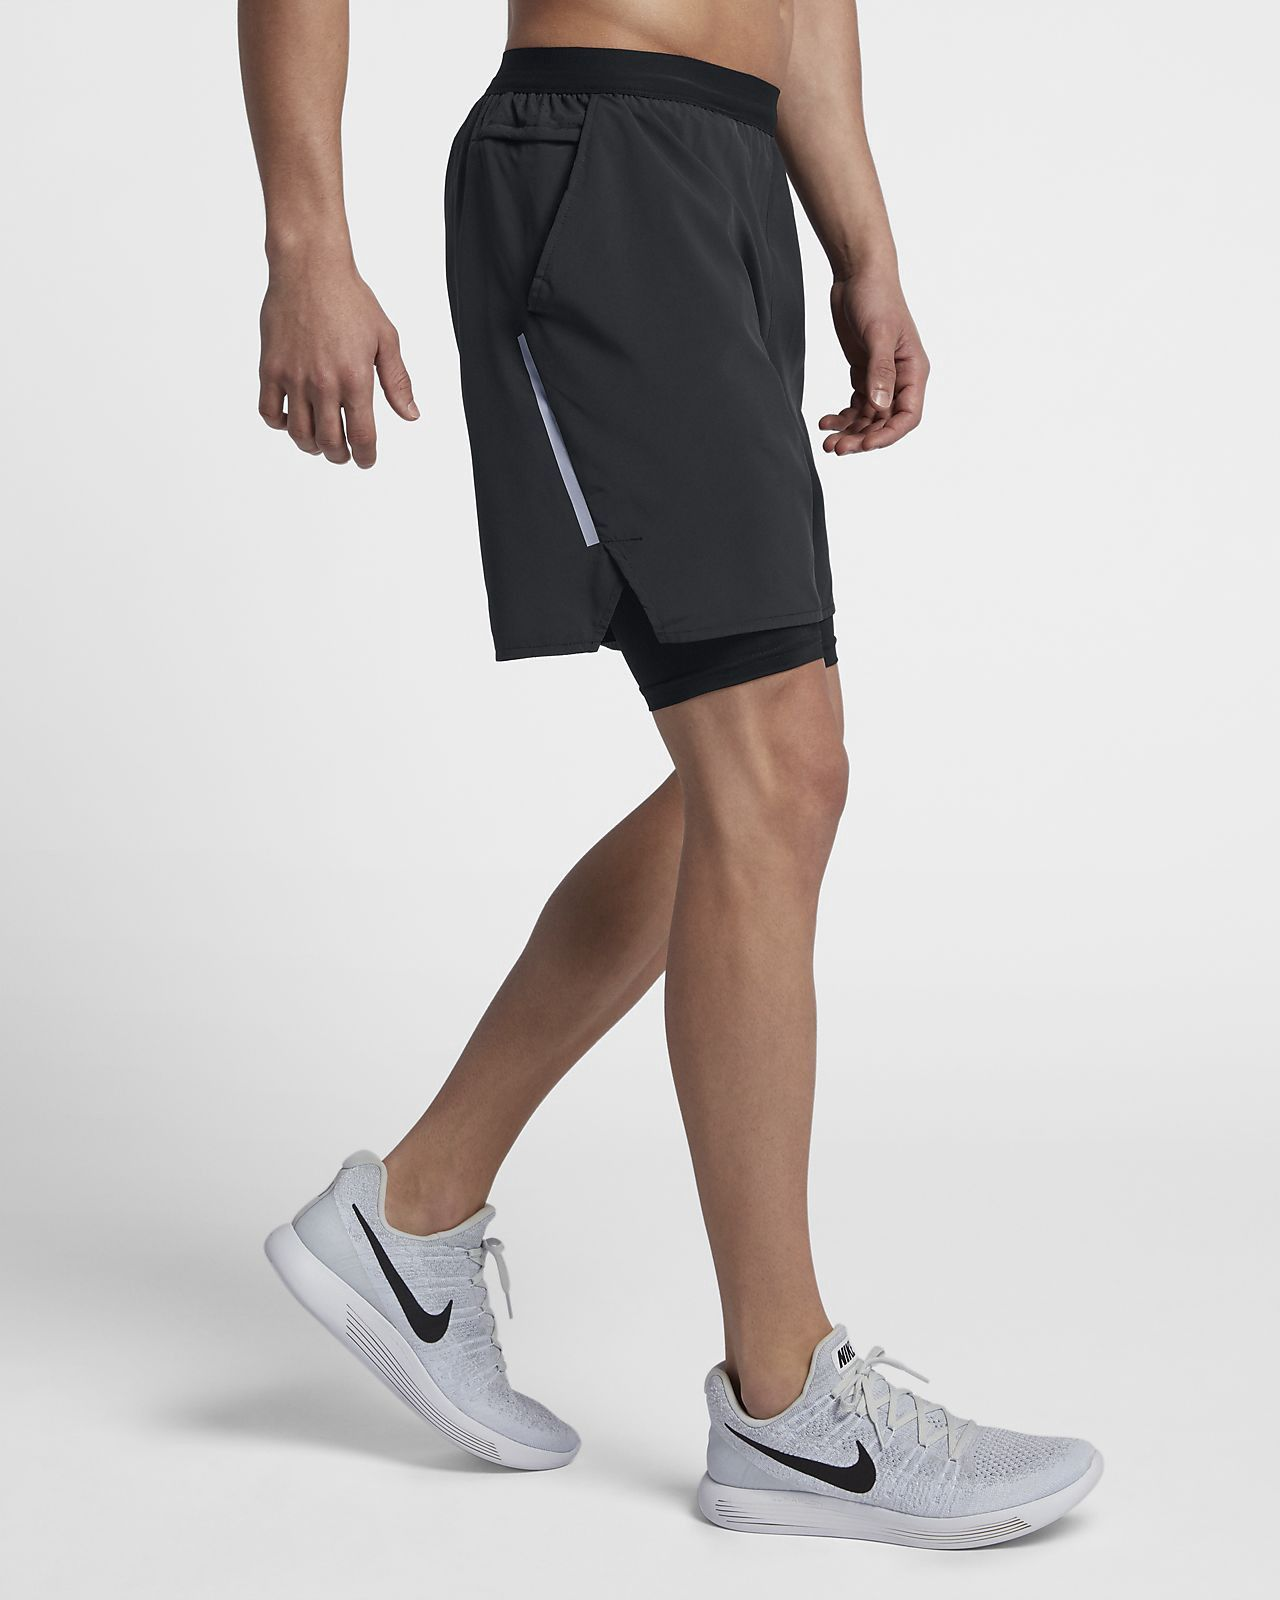 70fbb61c61 Nike Flex Stride Men's 2-In-1 Running Shorts - S in 2019 | Products ...